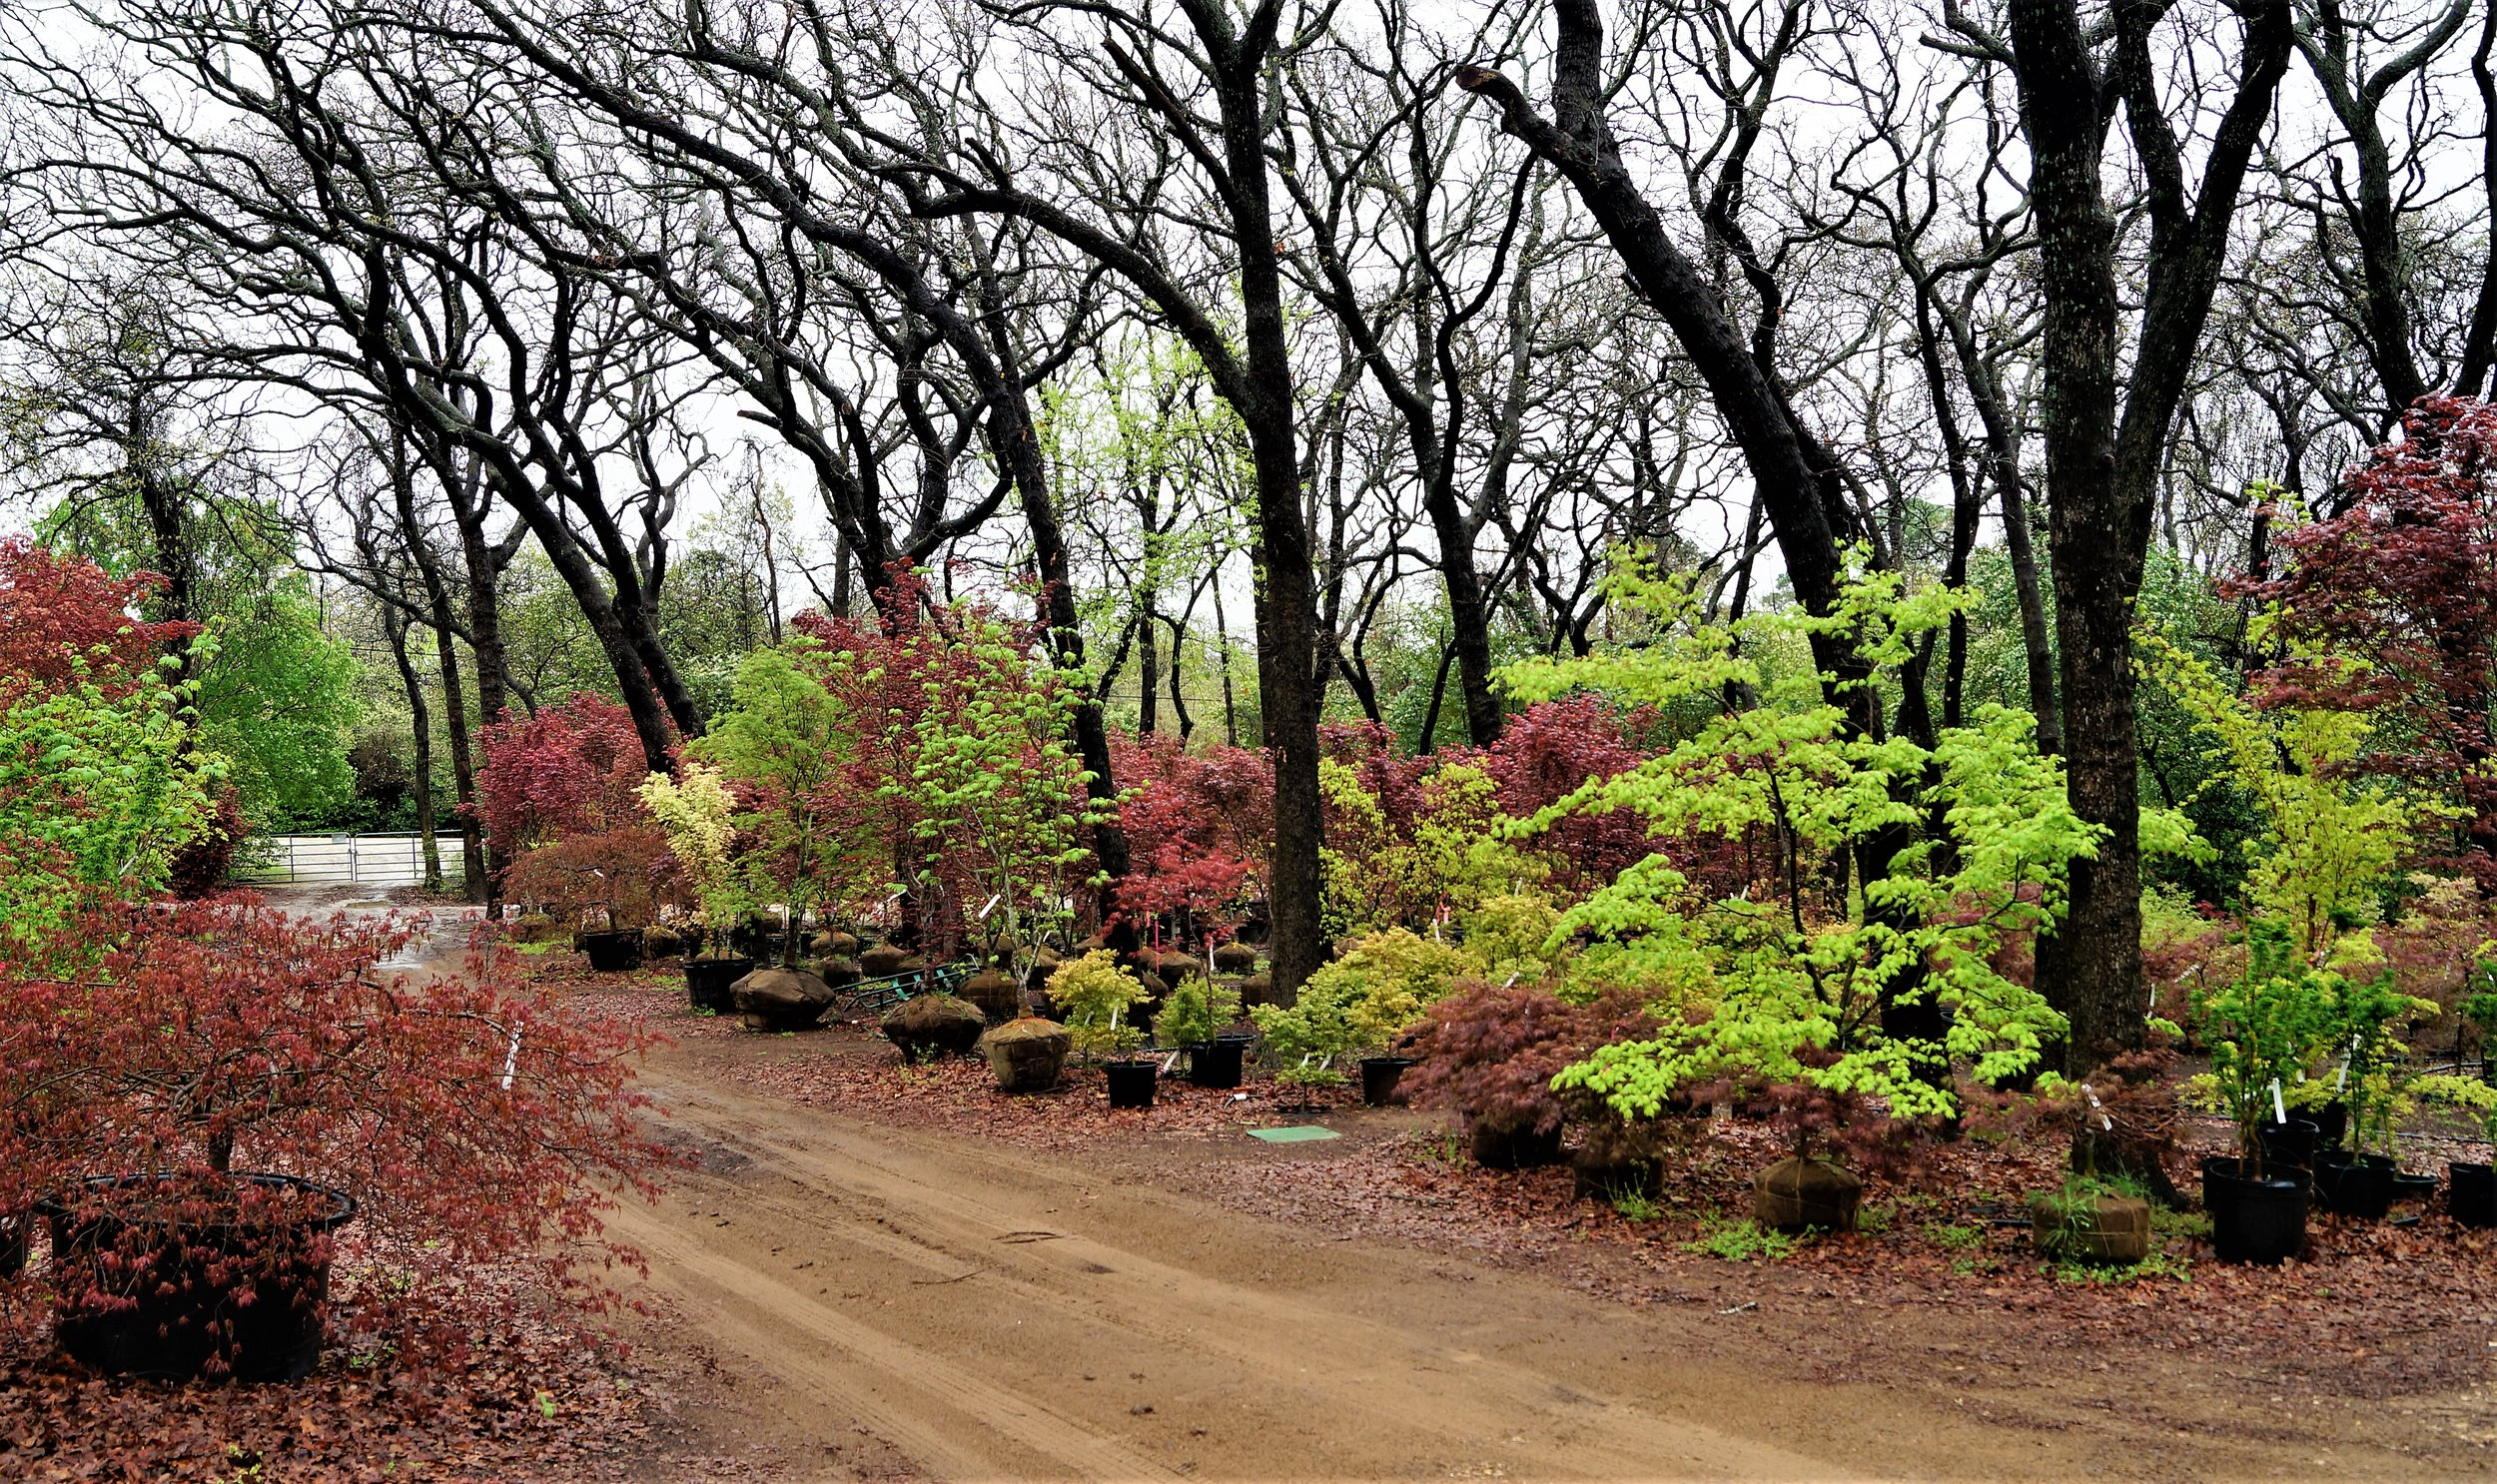 We also have a huge assortment of larger Japanese maples that will make your neighbors envious of your garden!